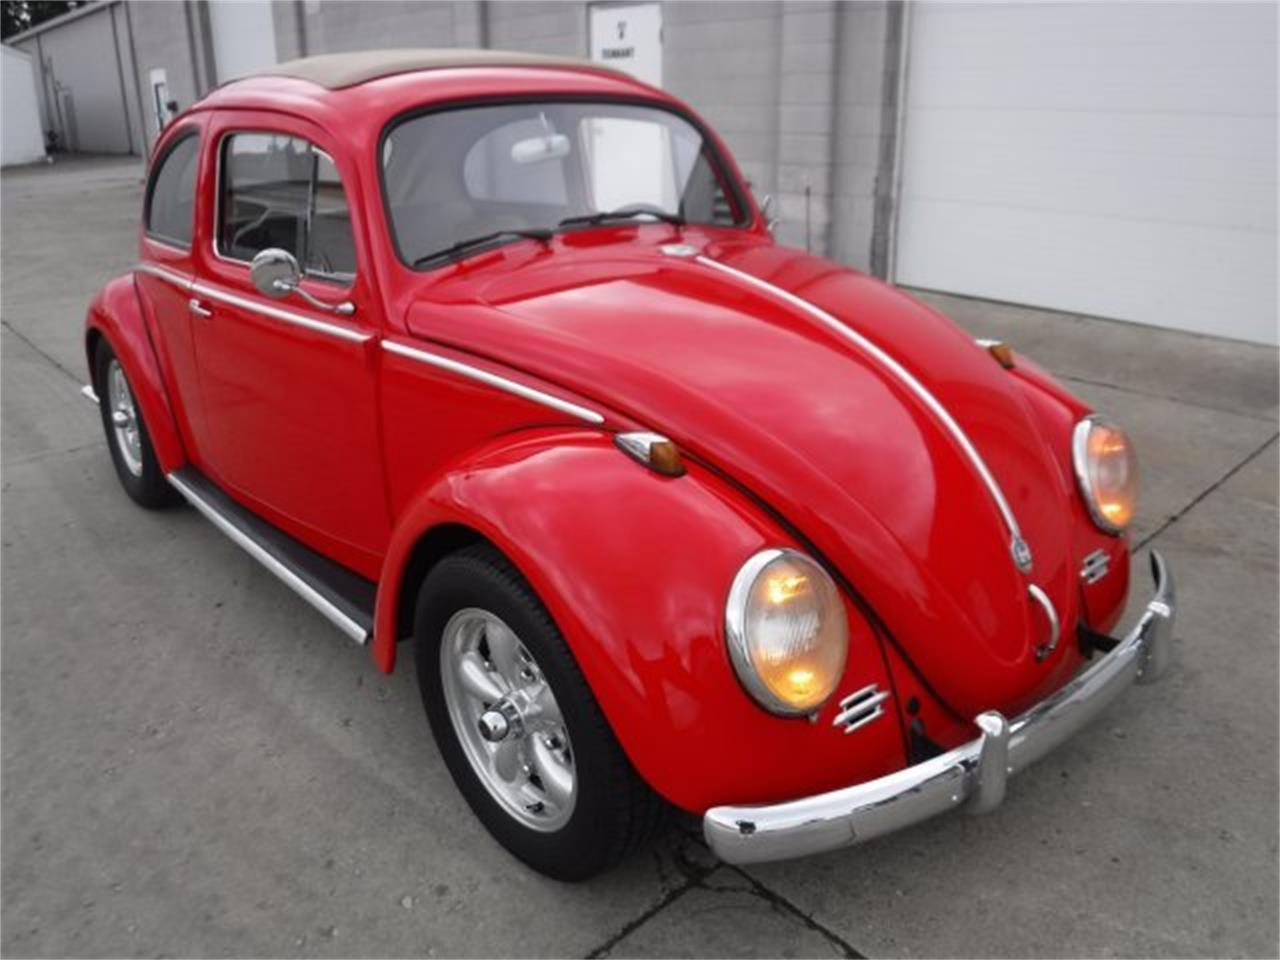 Large Picture of '59 Volkswagen Beetle located in Ohio - $27,500.00 Offered by Ultra Automotive - OIZB